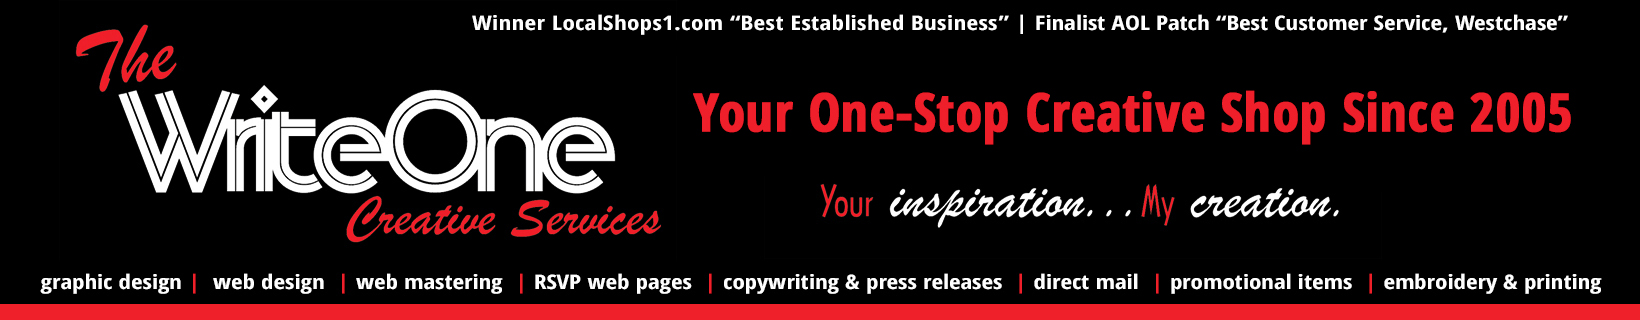 The Write One Creative Services